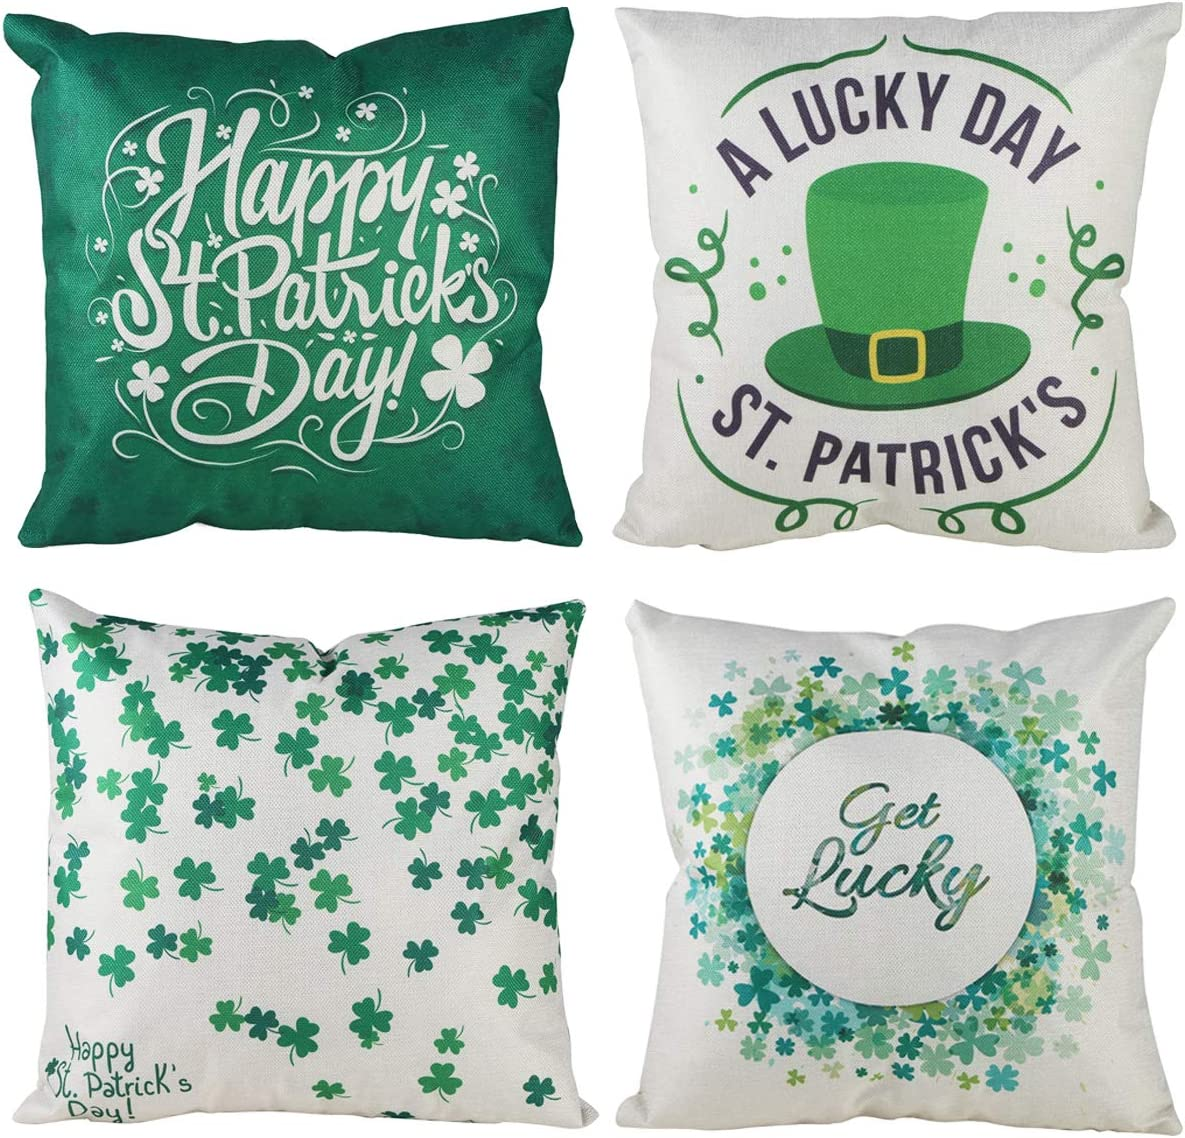 XIECCX Throw Pillow Covers 18x18 Set of 4 Outdoor Pillowcases Summer Home Decorative Pillows for Couch Sofa Bed Breathable Linen with Hidden Zipper(ST.Patrick's Day)